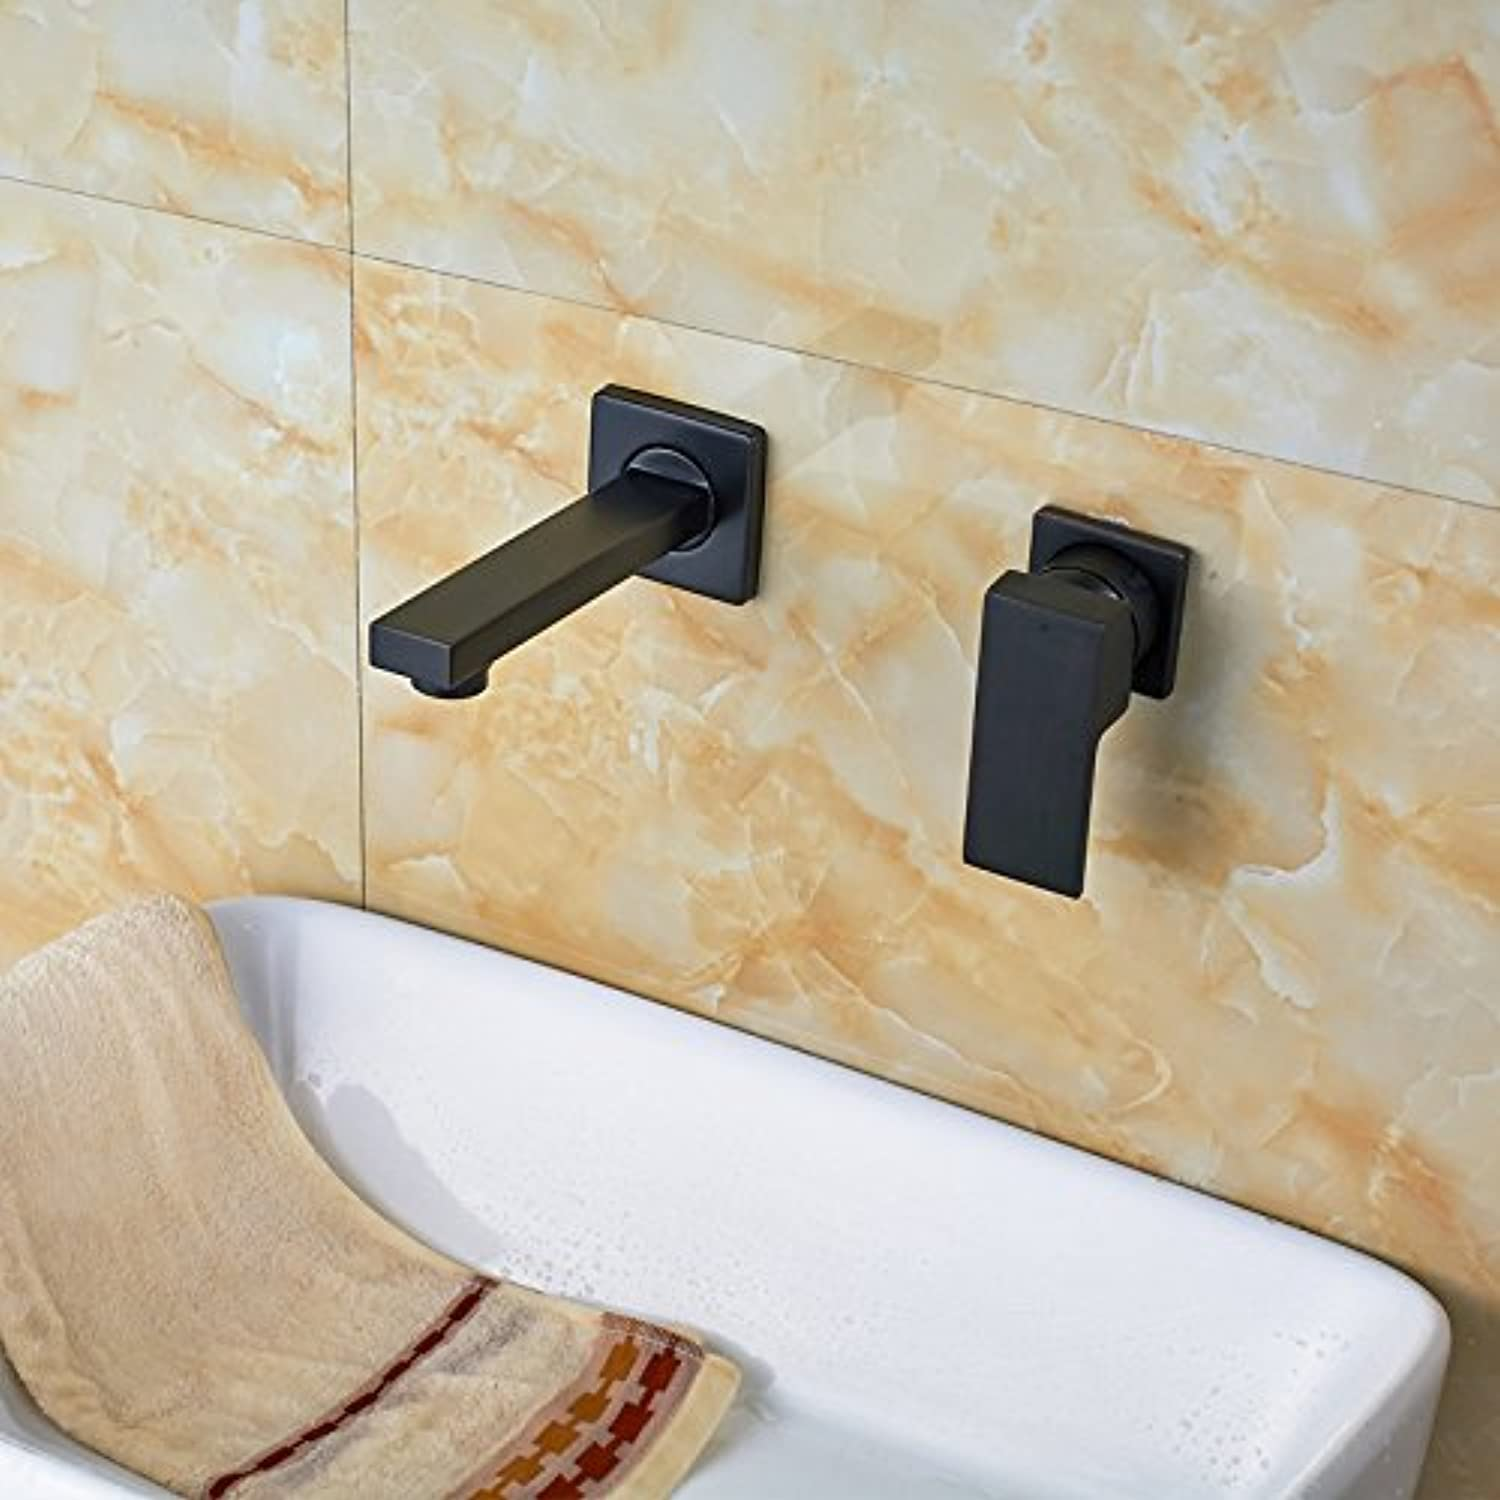 Maifeini The Best Price Free Shipping Oil Copper Bathroom Basin Series Wall Mount